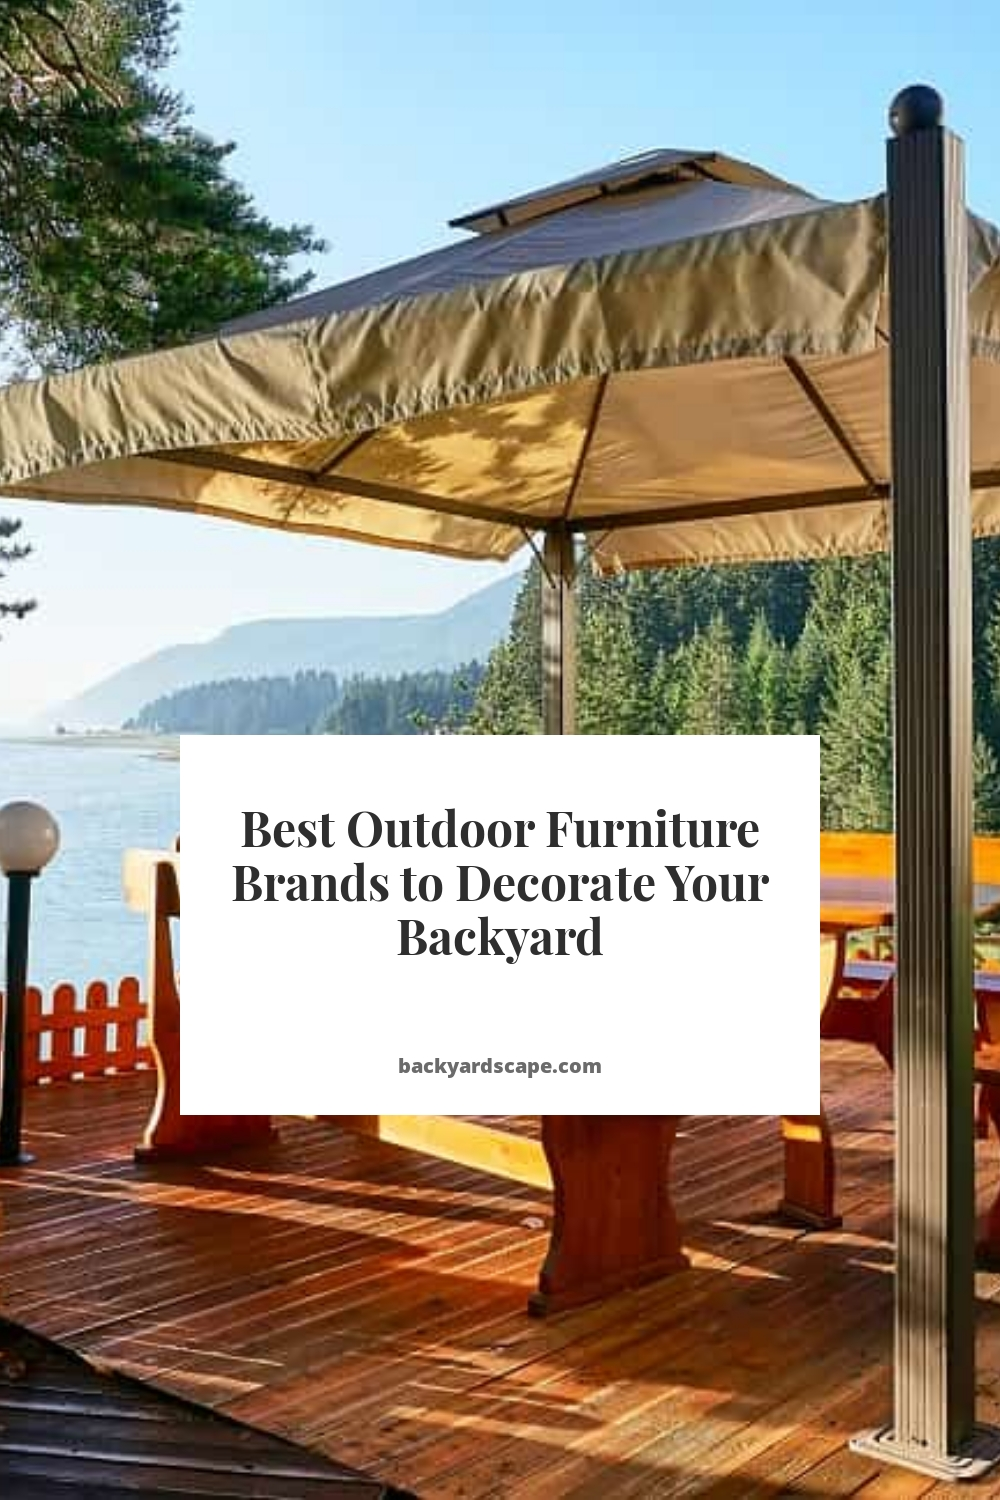 Best Outdoor Furniture Brands to Decorate Your Backyard